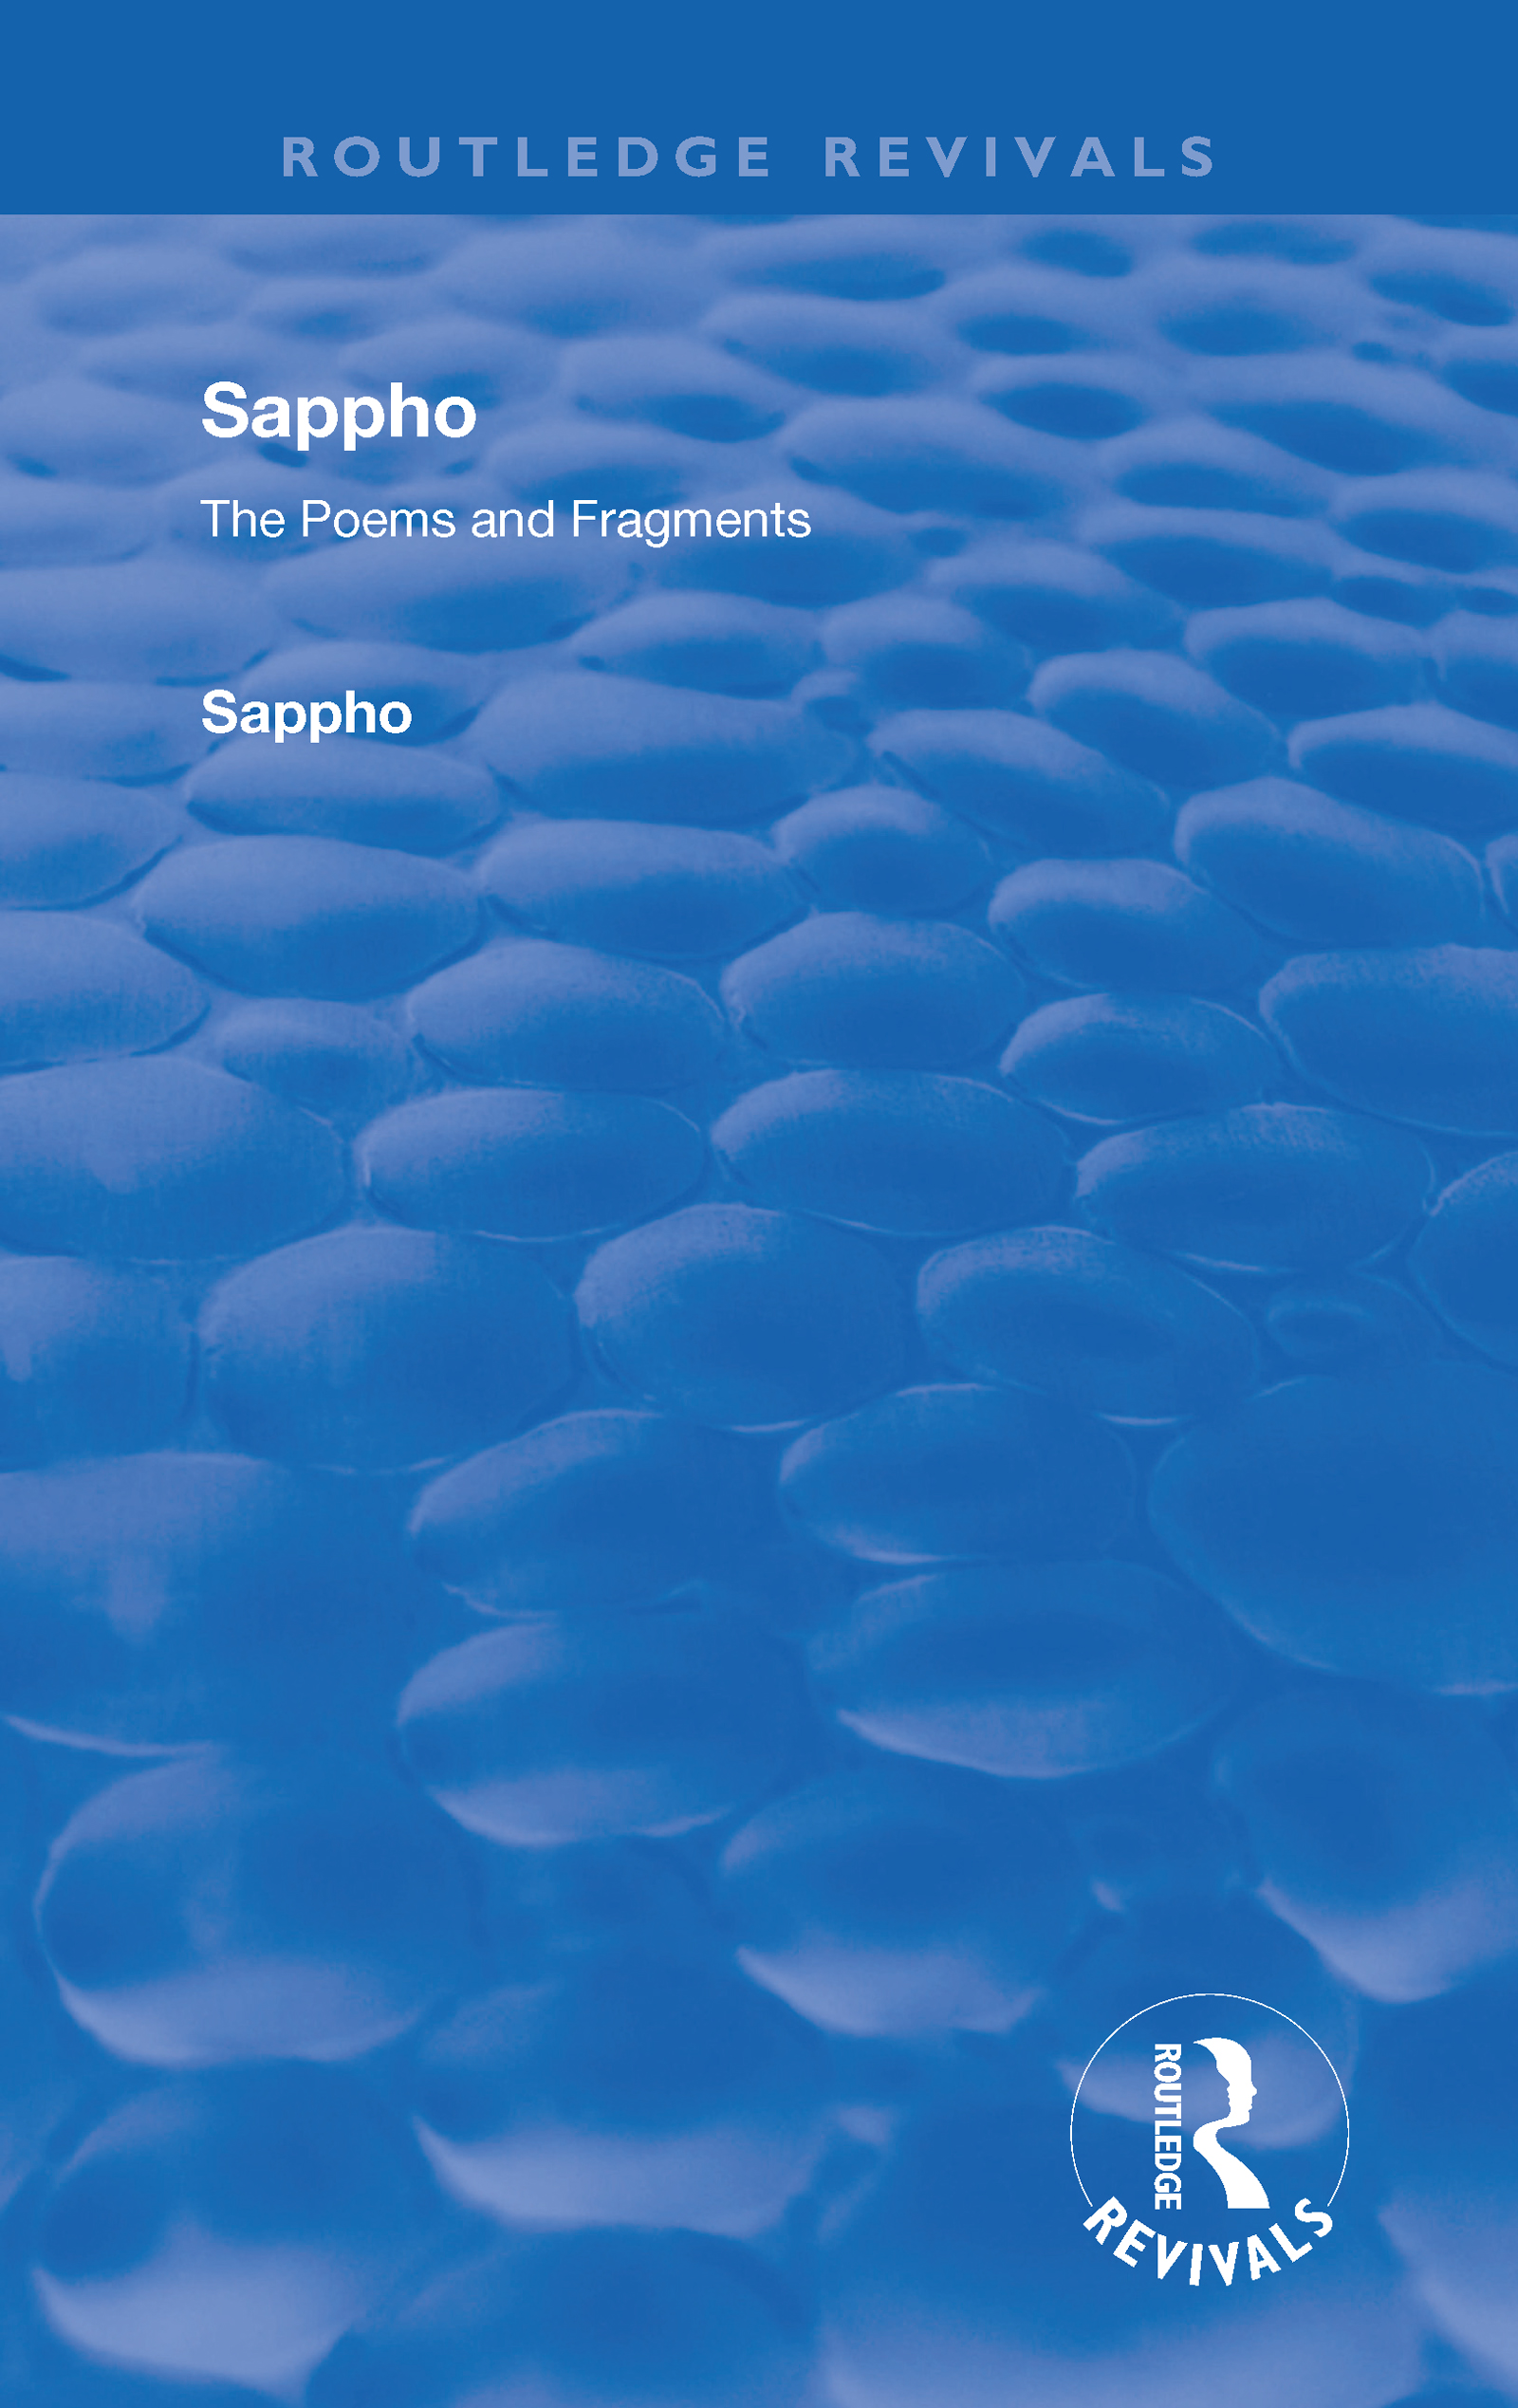 Revival: Sappho - Poems and Fragments (1926)